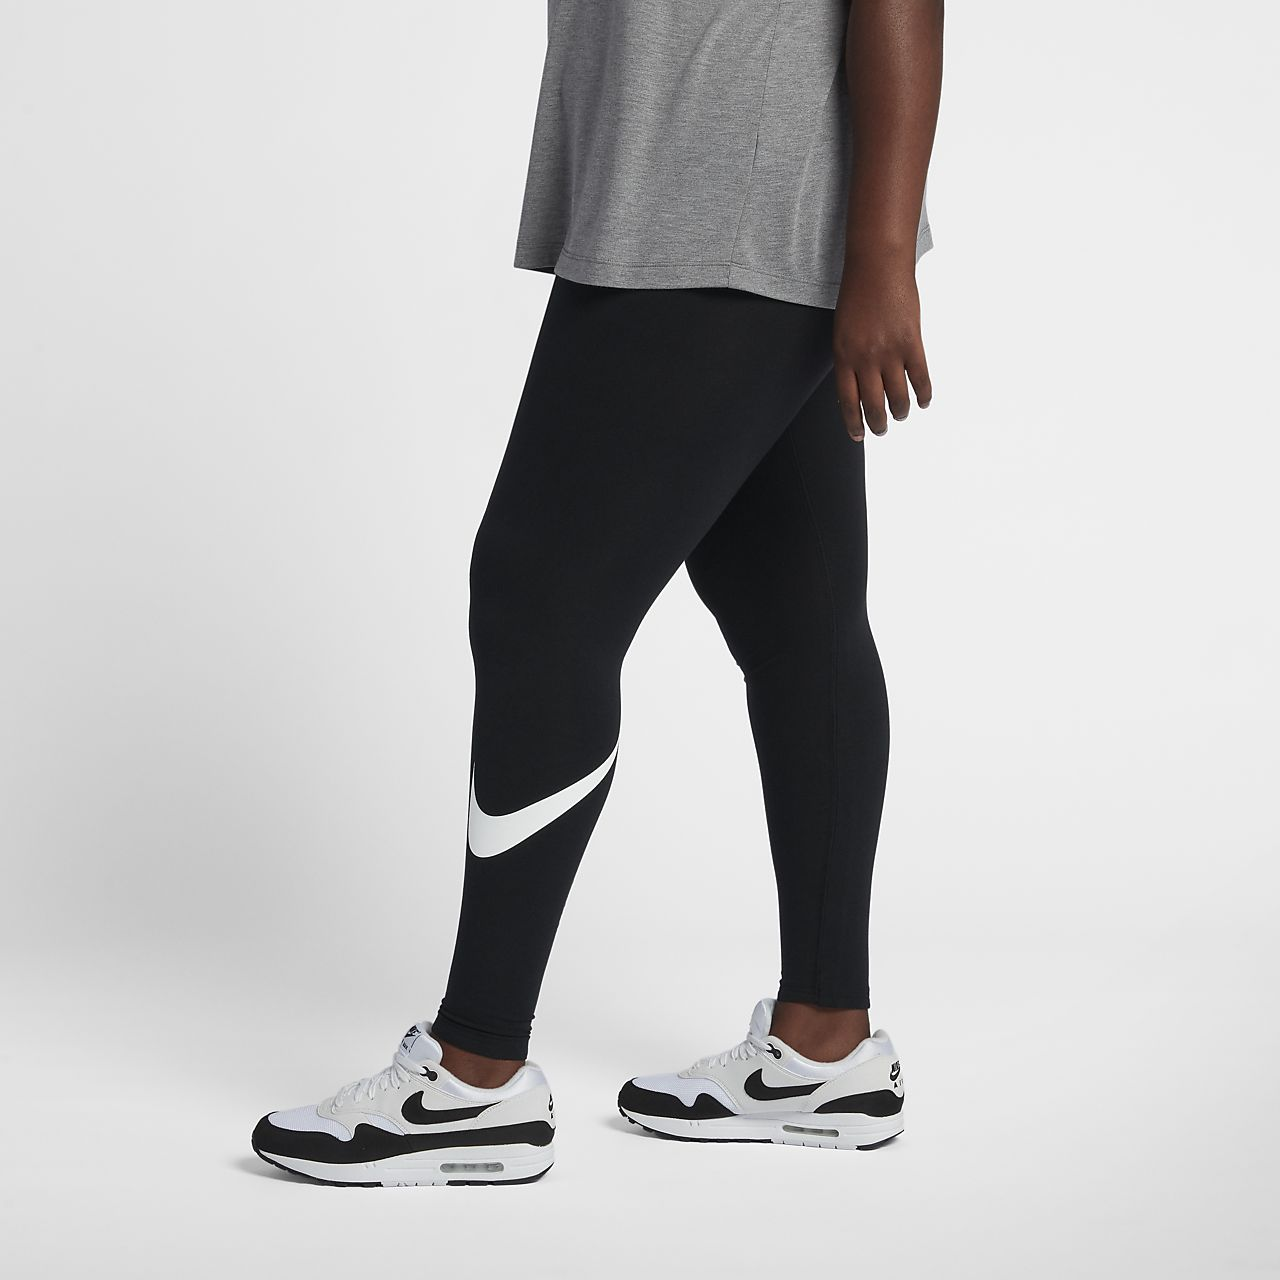 Nike Sportswear Women's Leggings (Plus Size)